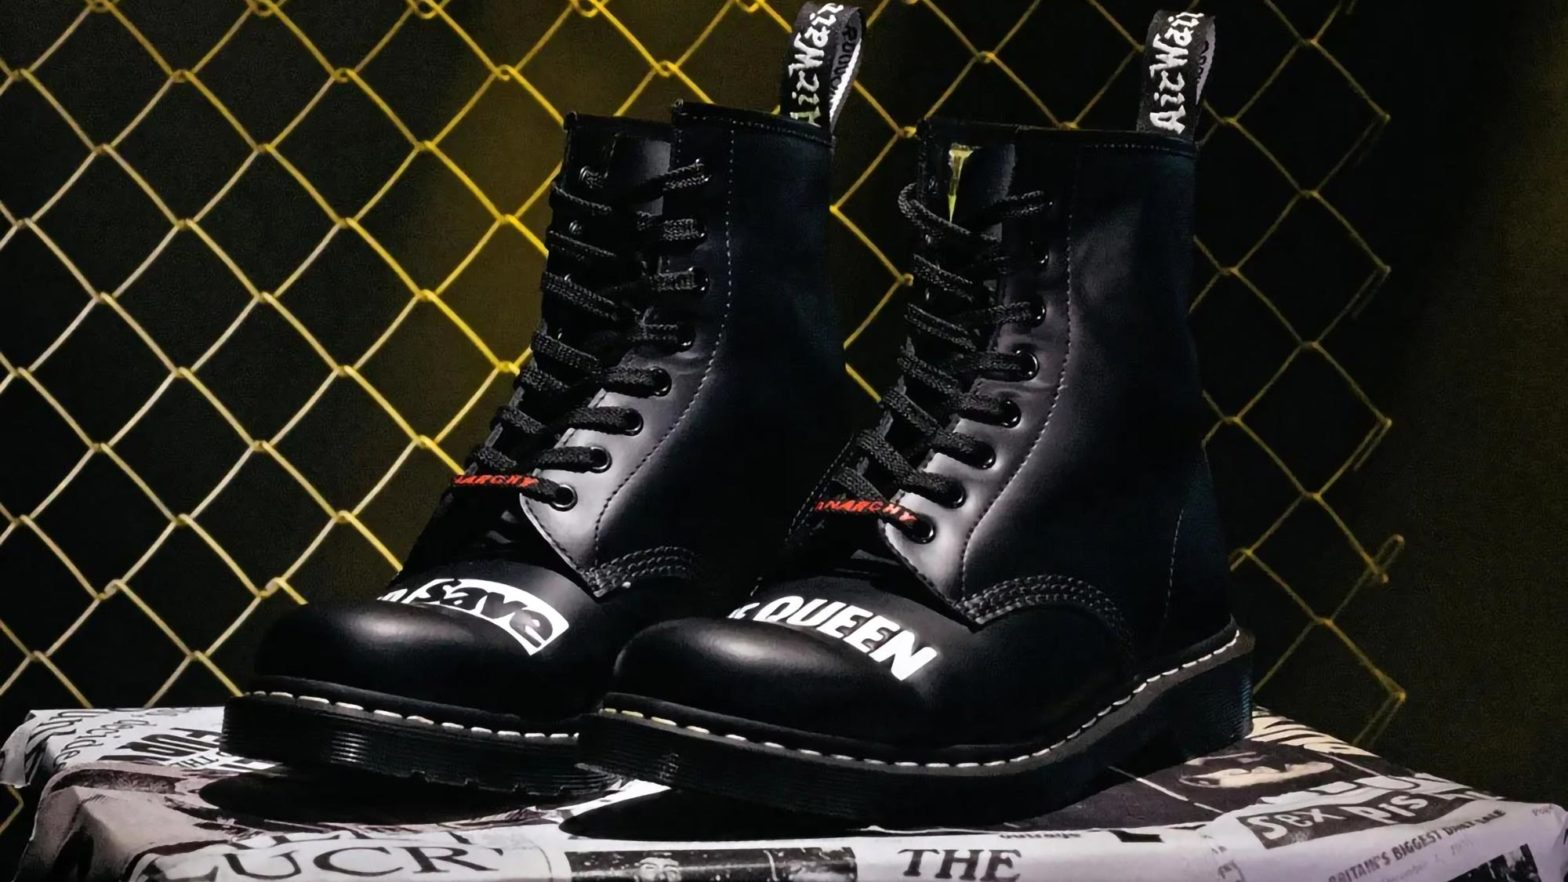 Dr. Martens x Sex Pistols 1460 Remastered Boots